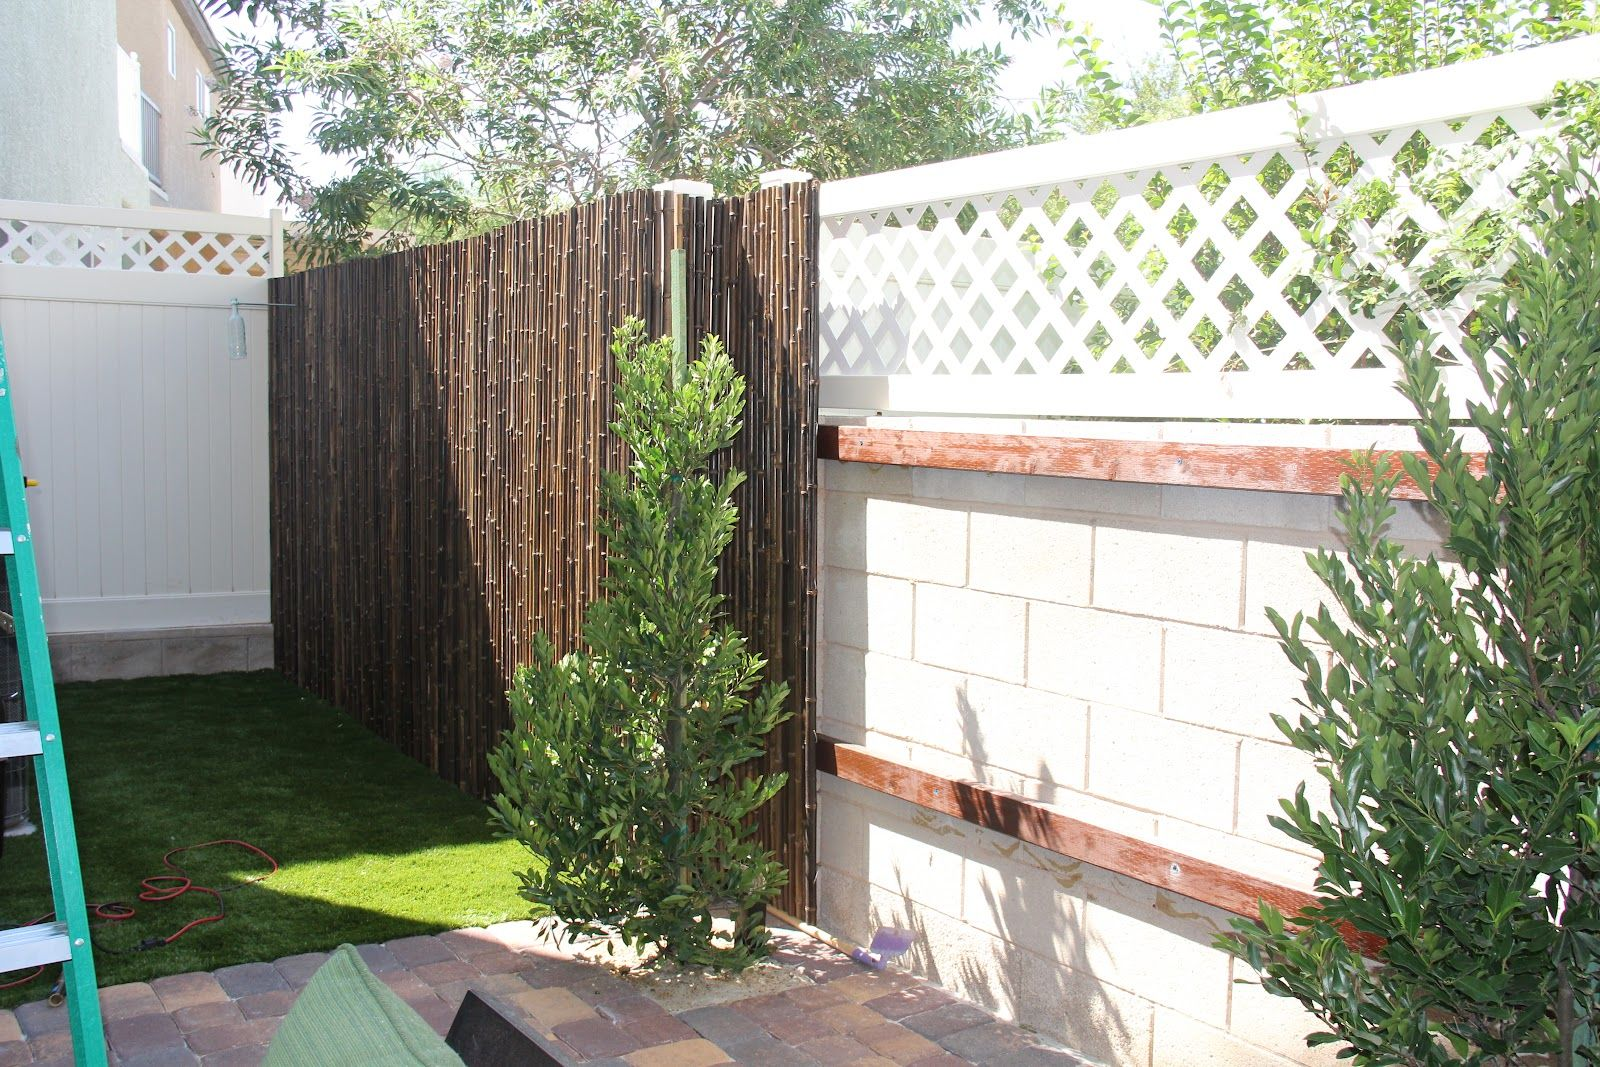 Bamboo Fencing As Inexpensive DIY Or Paid Option To Cover Ugly